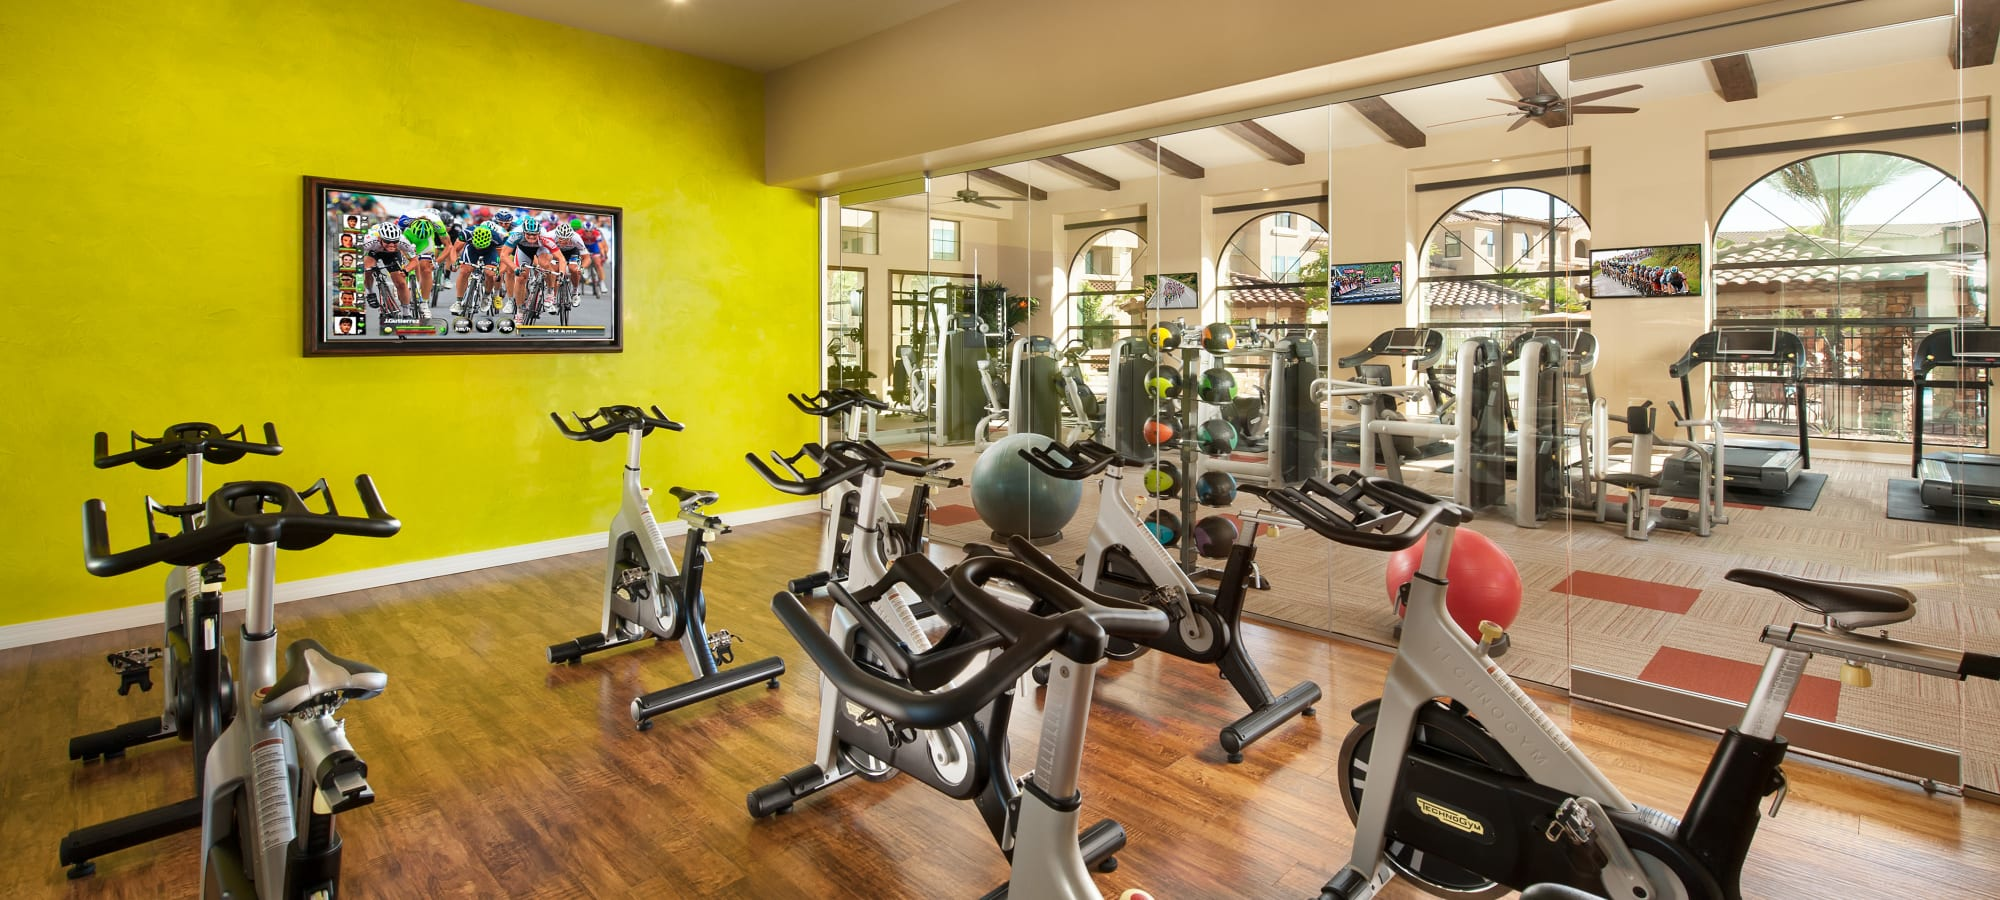 Take a spin class at San Sonoma in Tempe, Arizona